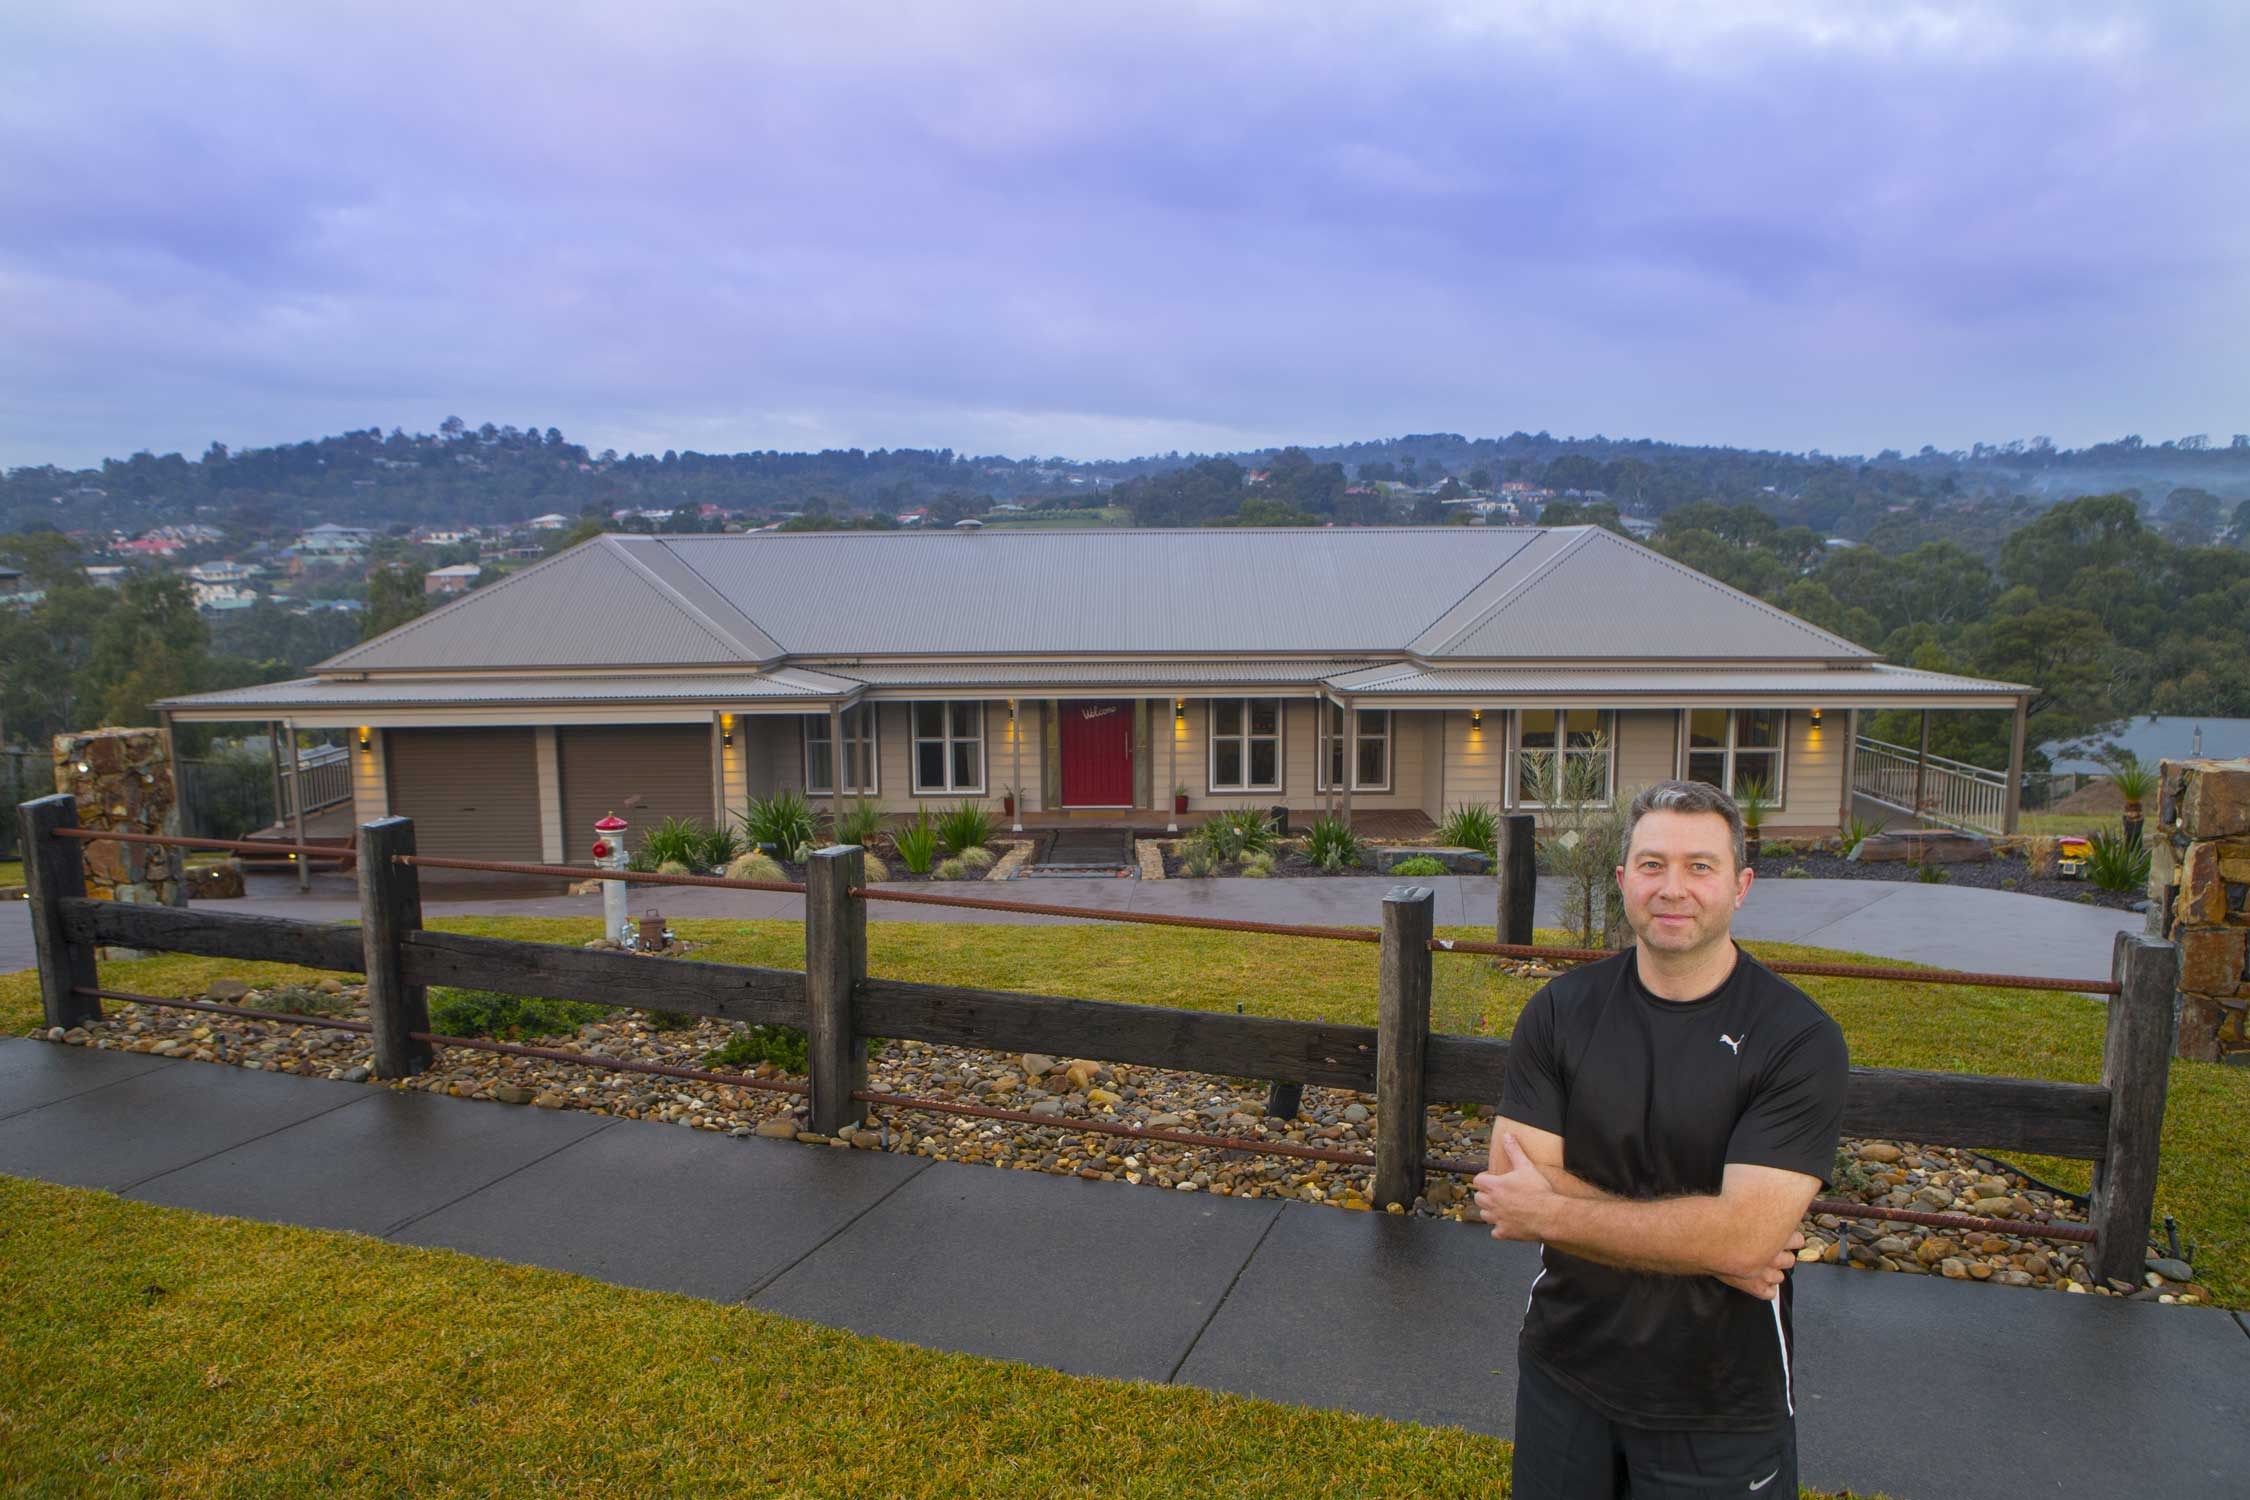 Owner Builders tackle the Castlereagh design from Paal kit homes Victoria